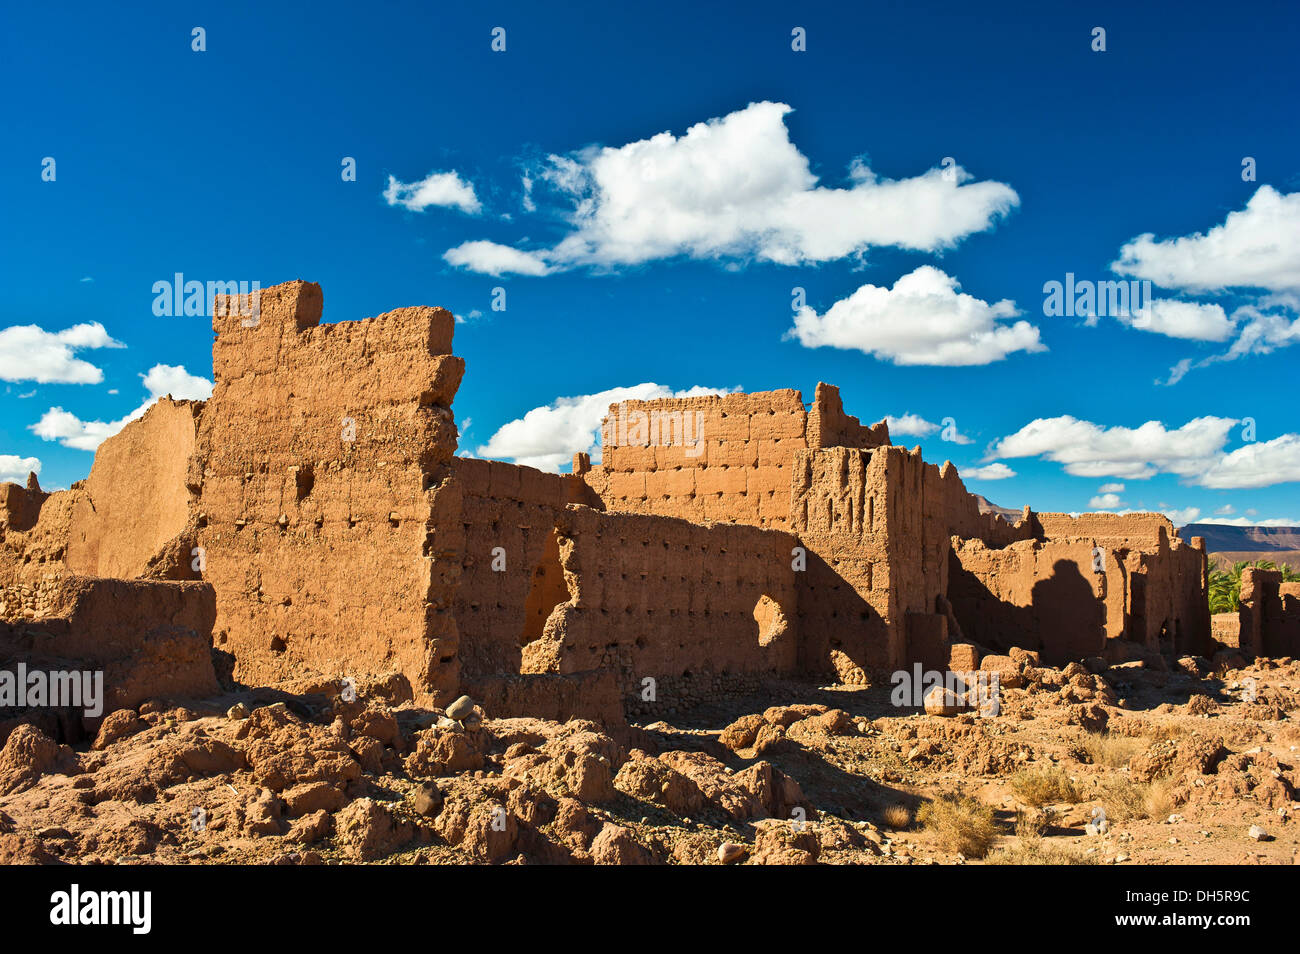 Derelict kasbah, mud brick fortress of the Berber people, Tighremt, Draa Valley, southern Morocco, Morocco, Africa - Stock Image